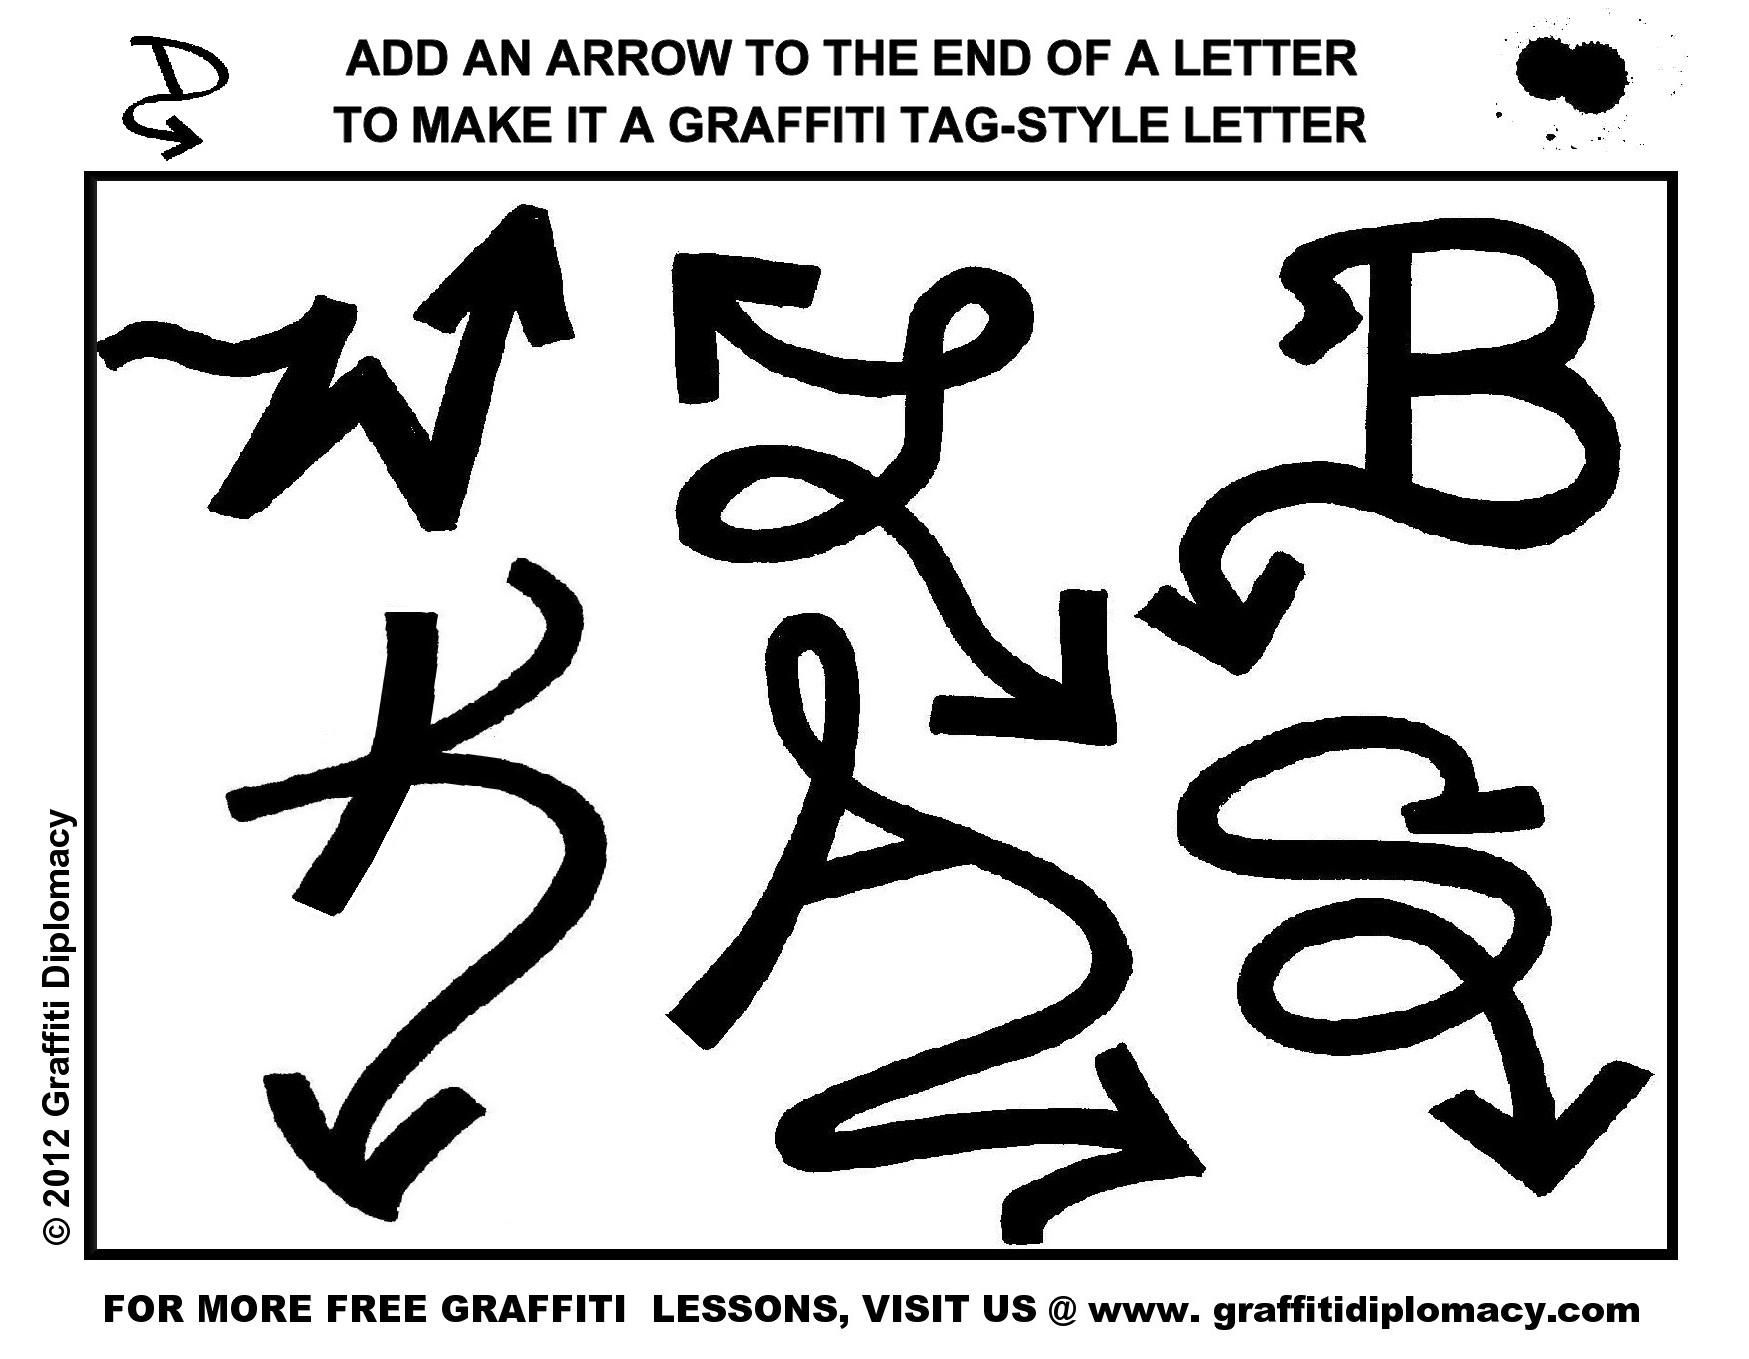 How To Draw Graffiti Letters Step By Step On Paper Learn How To Draw Graffiti Arrows History Of Graffiti Art Easy